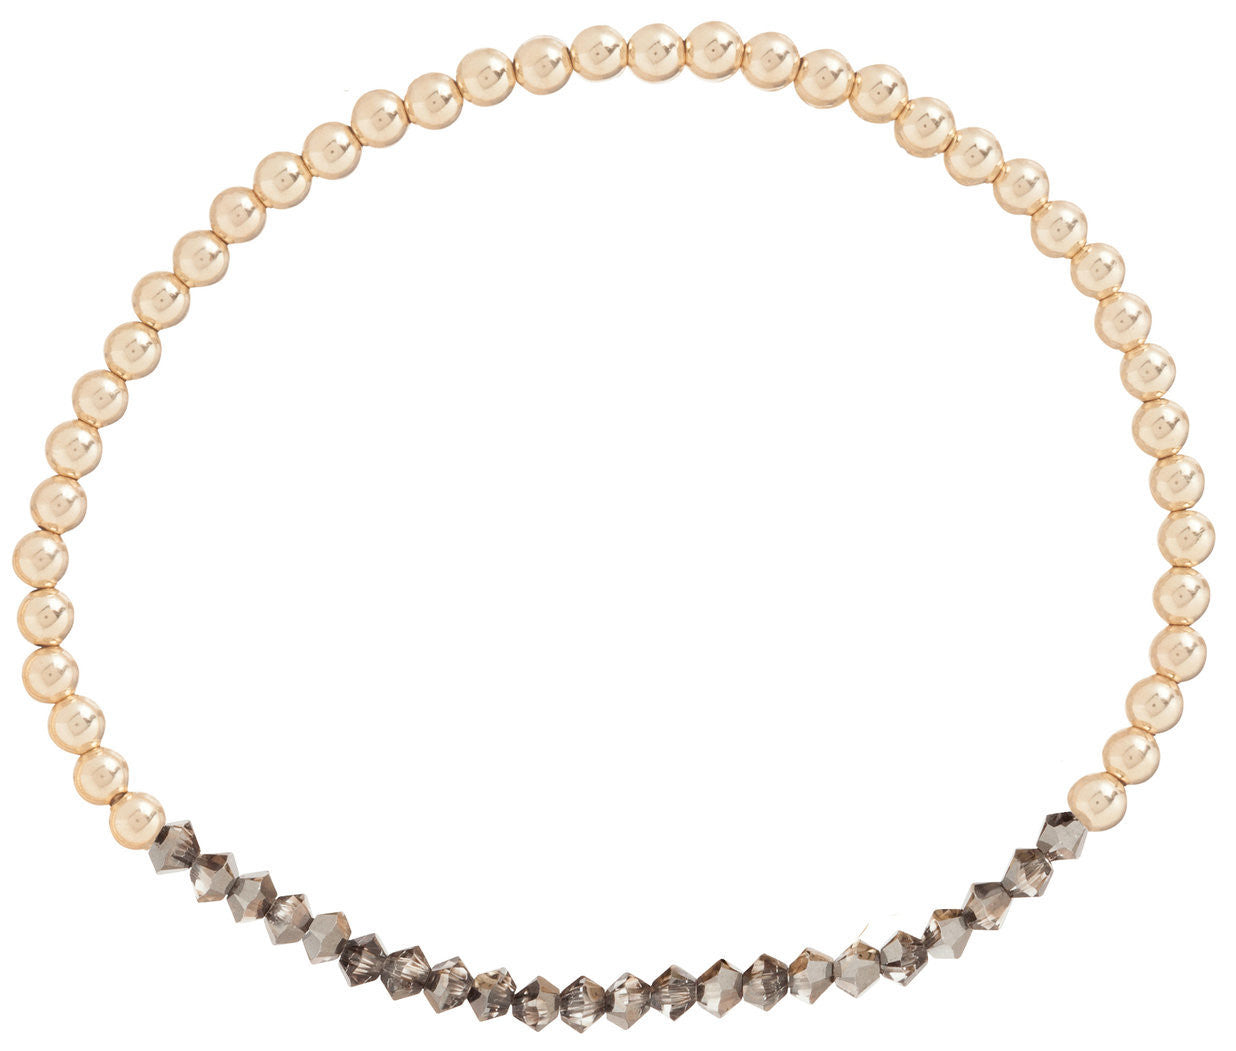 ENEWTON DESIGN - CRYSTAL BLISS BRACELET - GOLD